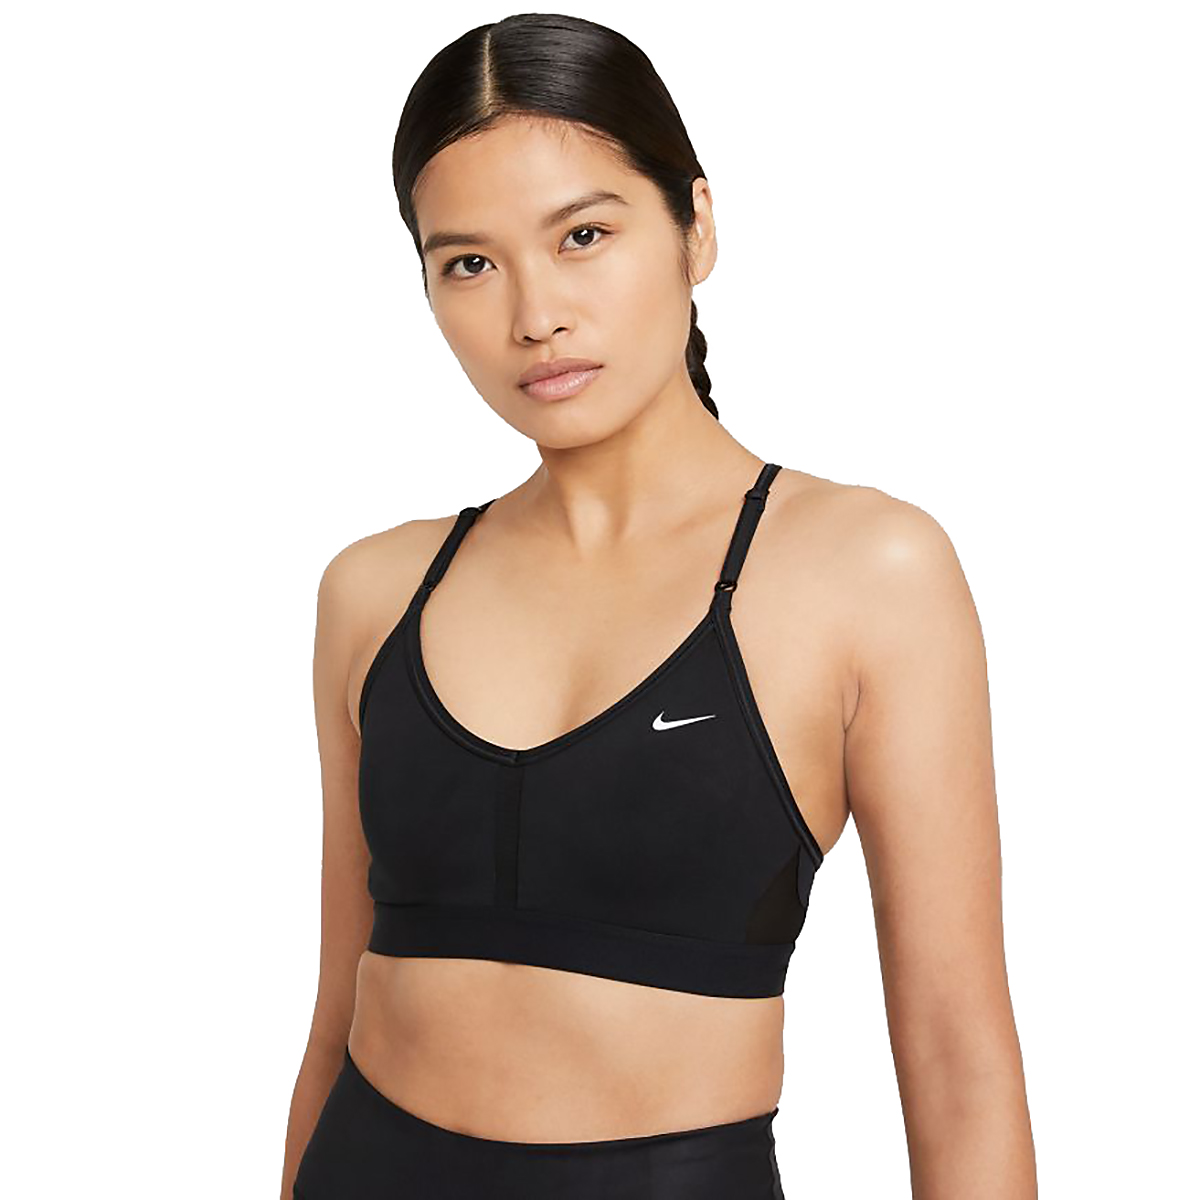 Women's Nike Dri-FIT Indy Light-Support Padded V-Neck Sports Bra - Color: Black/Black/Black/White - Size: XS, Black/Black/Black/White, large, image 1